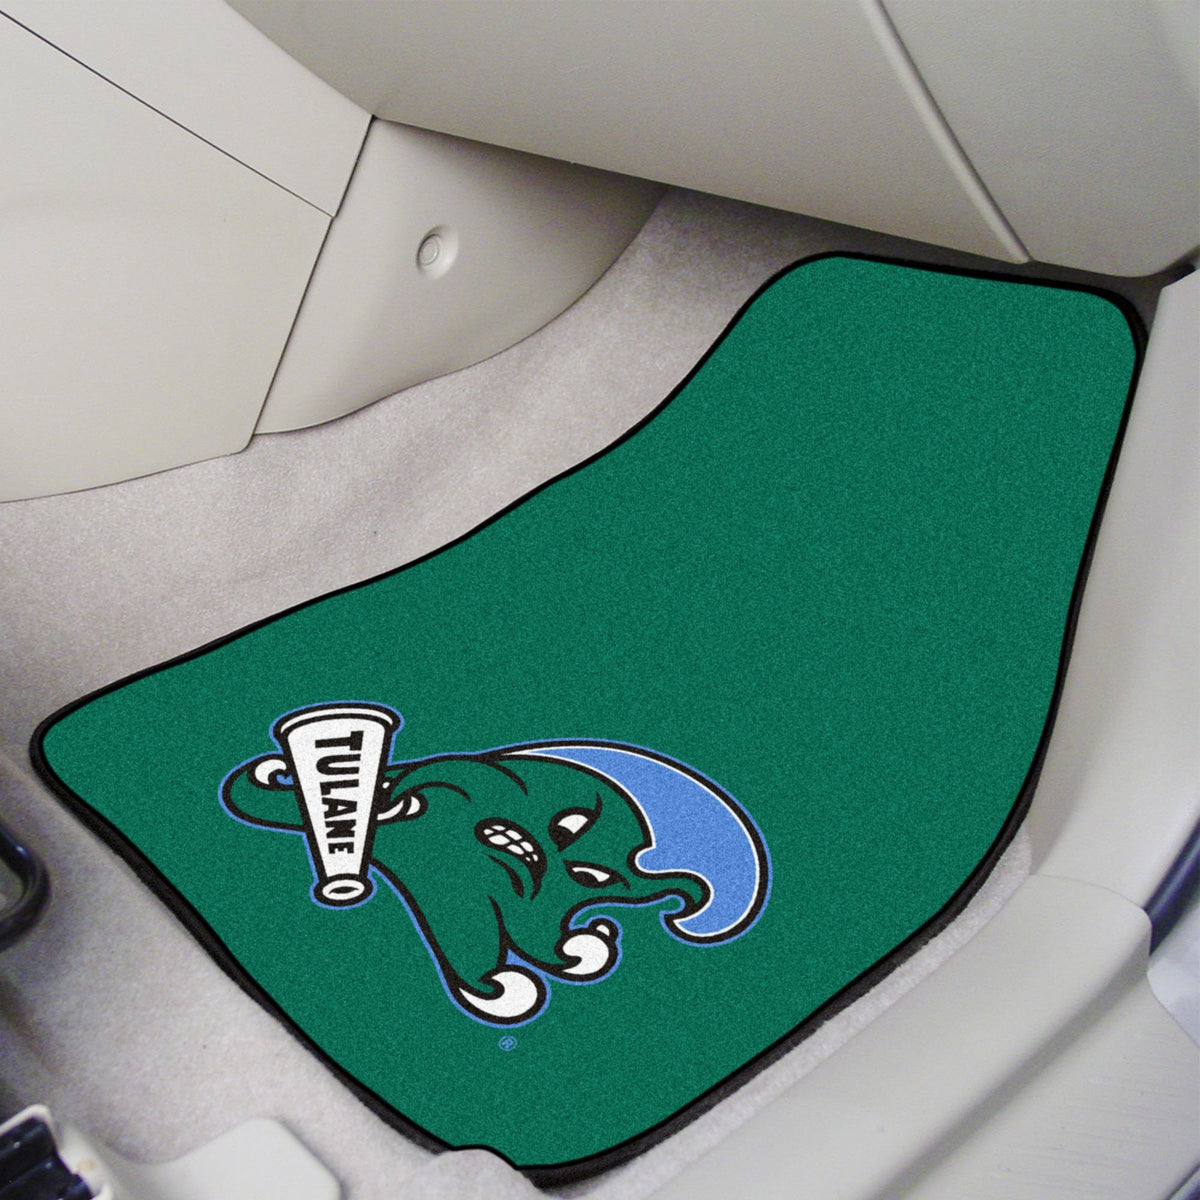 Collegiate - Carpet Car Mat, 2-Piece Set: T - Z Collegiate Car Mat, Front Car Mats, 2-pc Carpet Car Mat Set, Collegiate, Auto Fan Mats Tulane